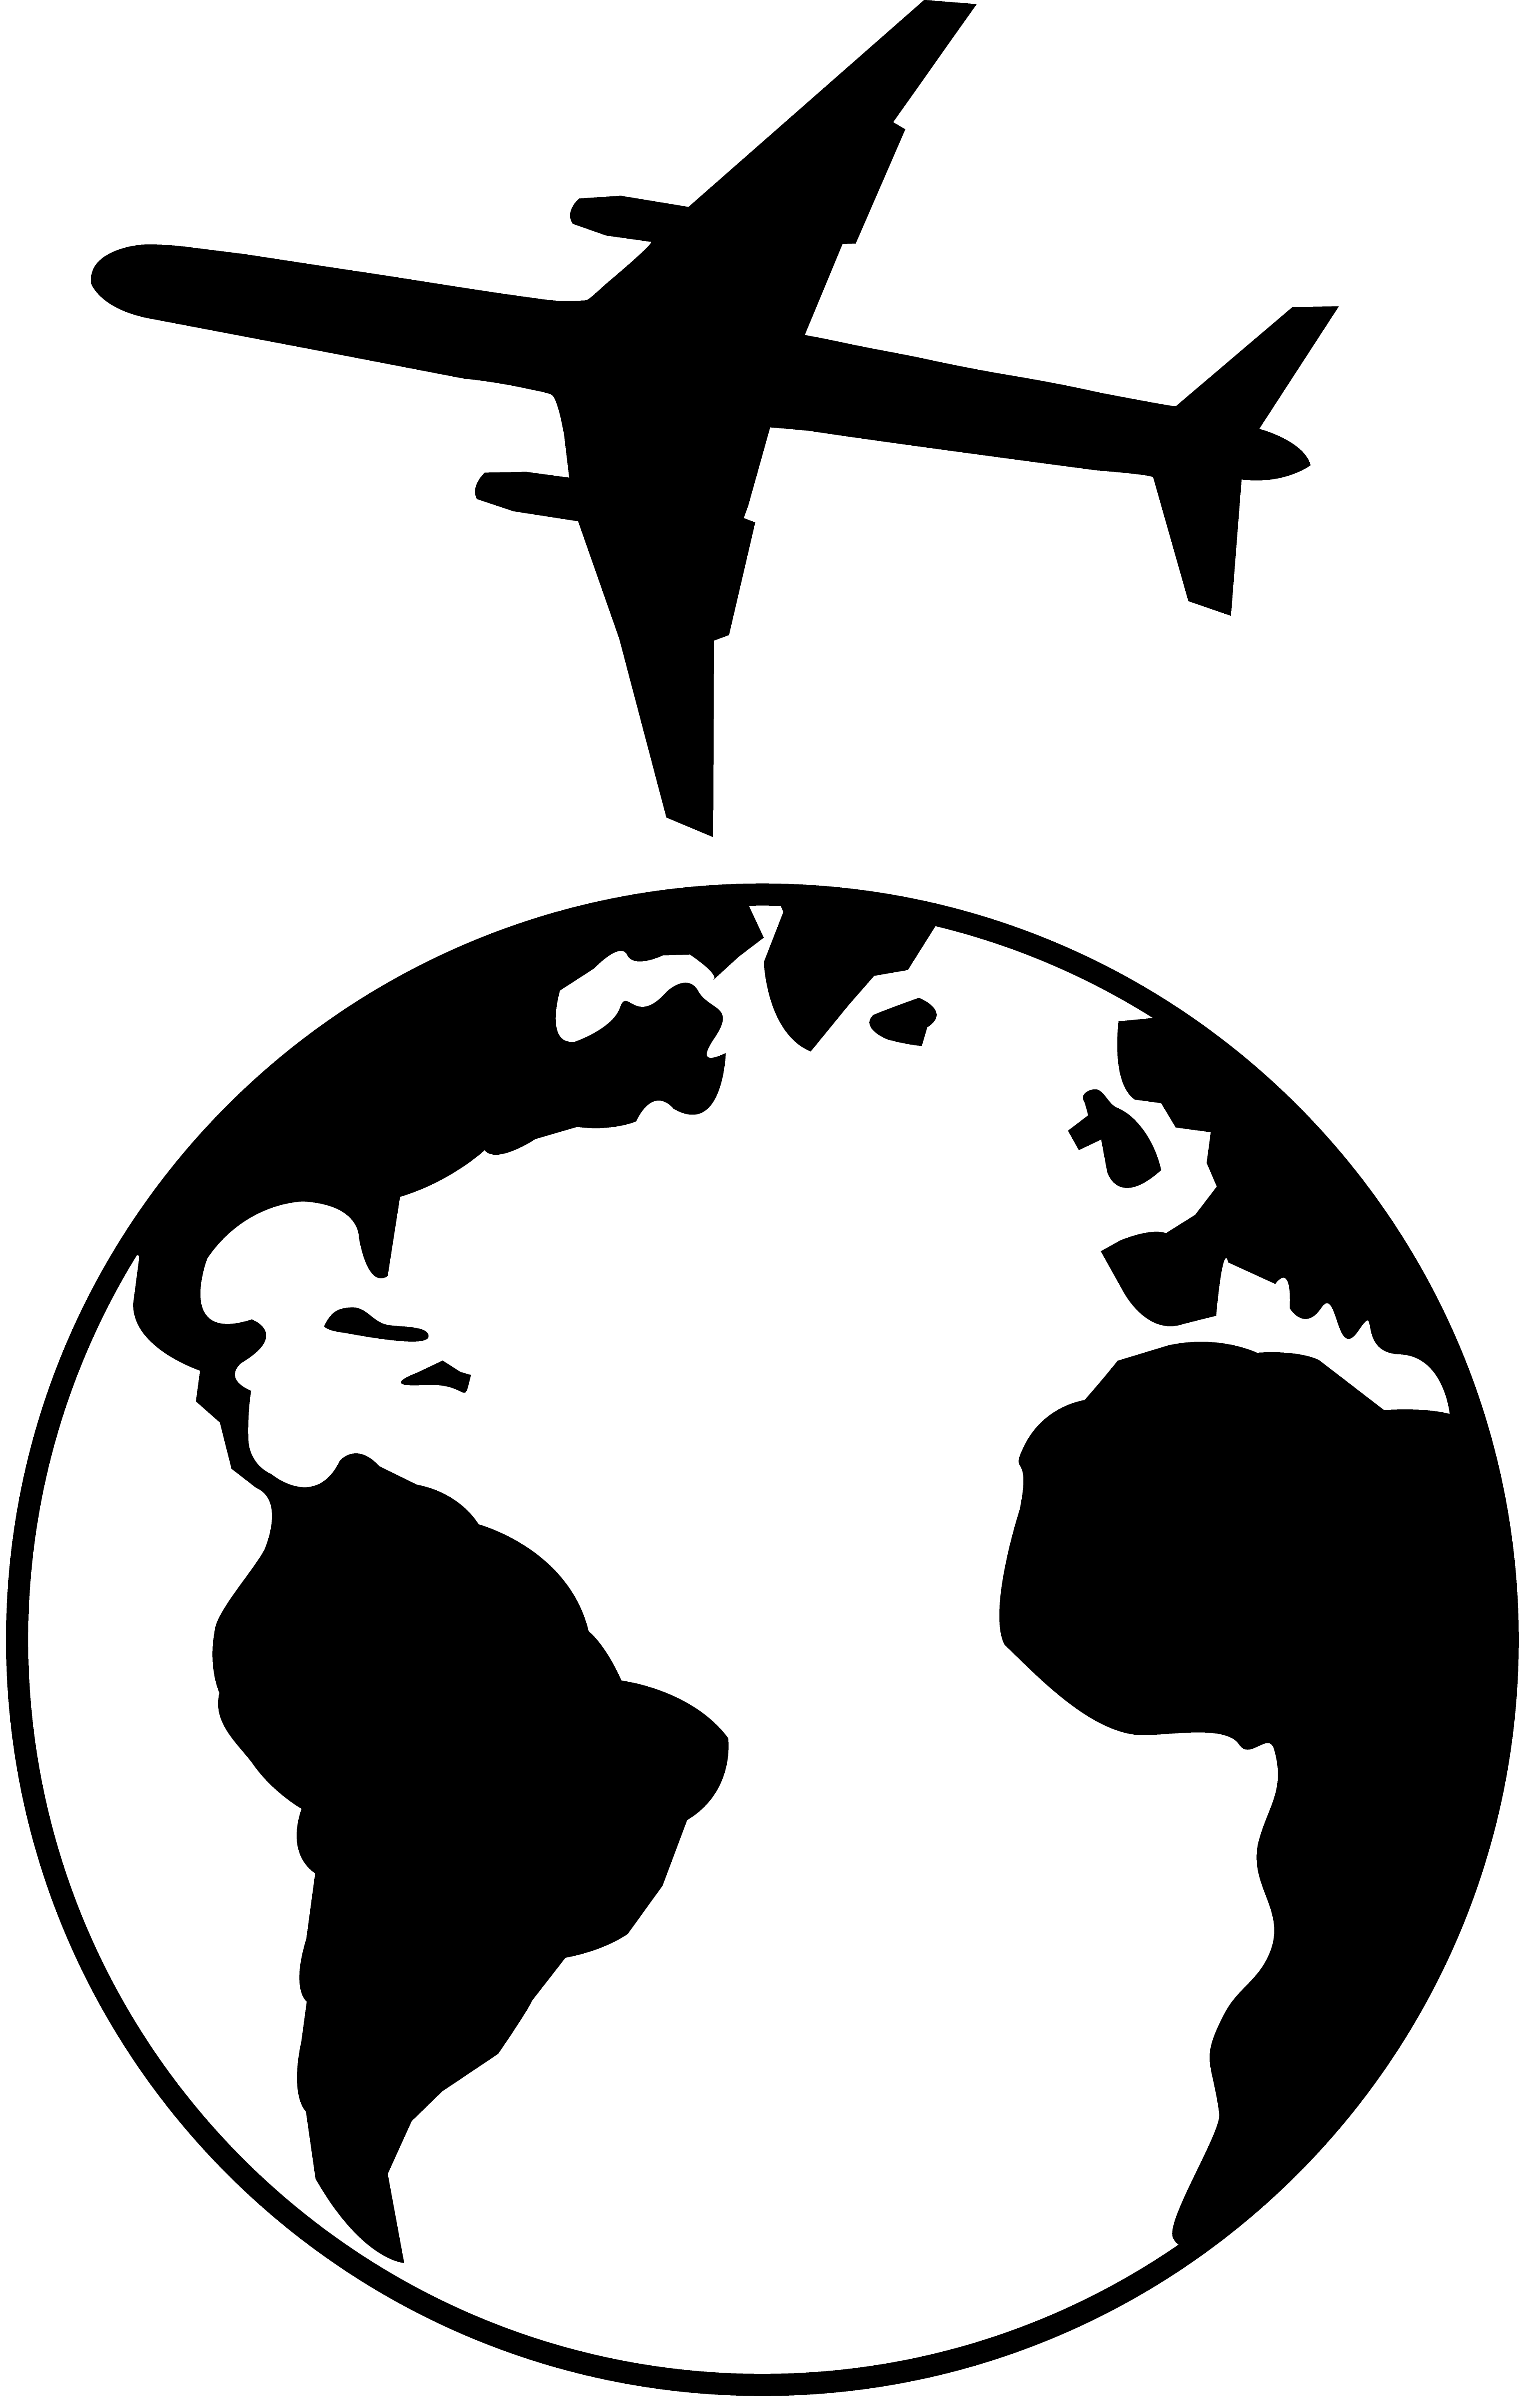 earth silhouette at getdrawings com free for personal use earth rh getdrawings com  earth clipart black and white free